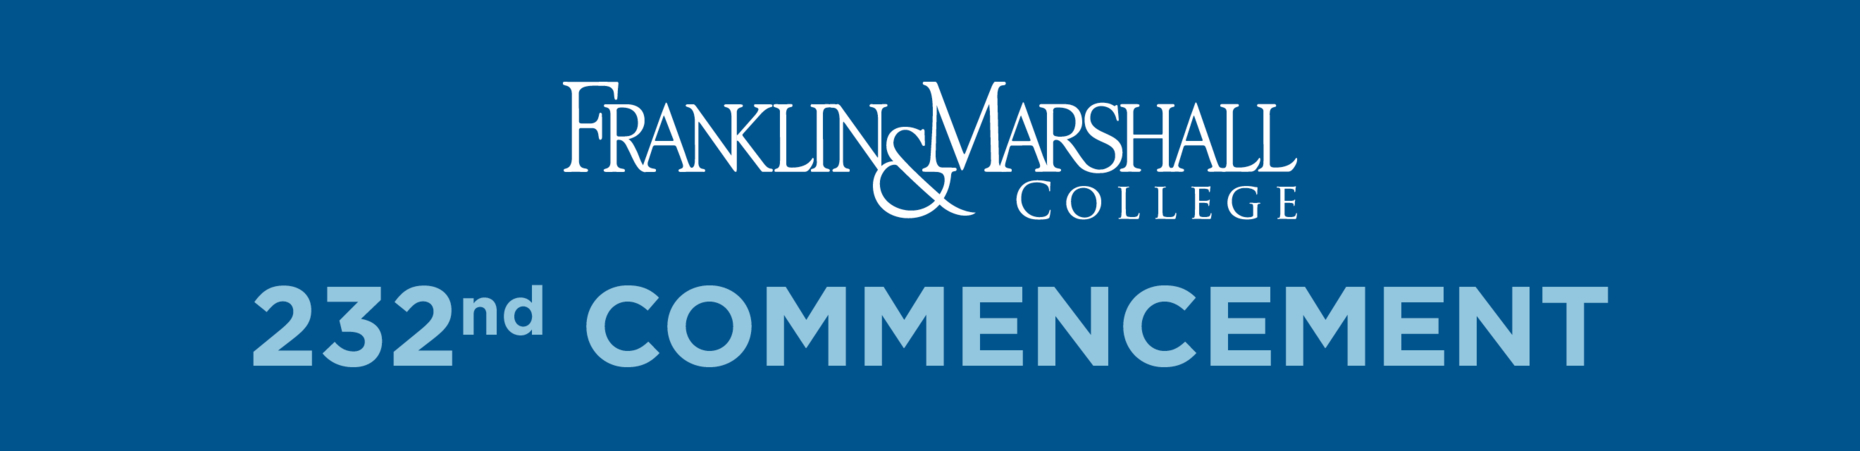 Franklin & Marshall - Commencement 2019 F&m Academic Calendar 2019